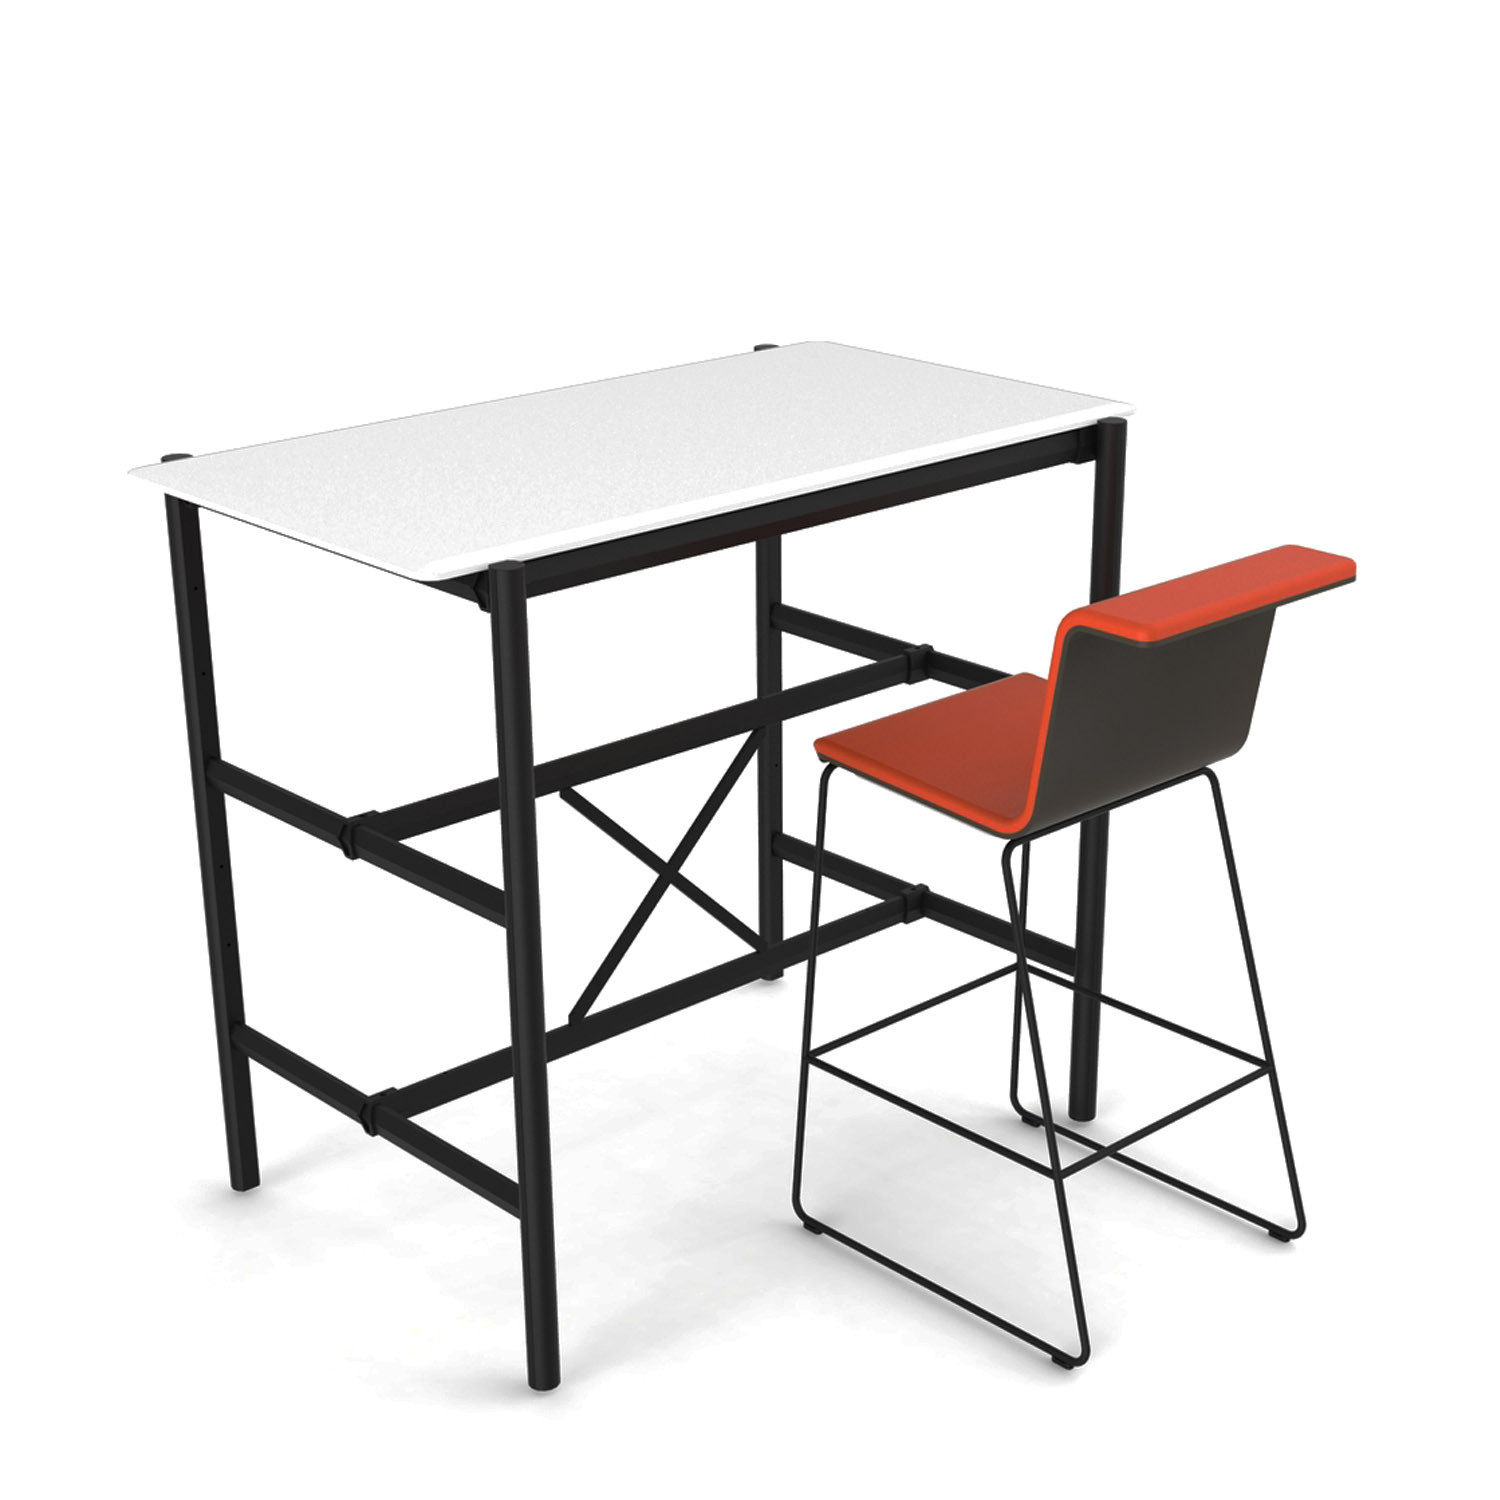 systems system workstations workspace modular products steelcase desk tour